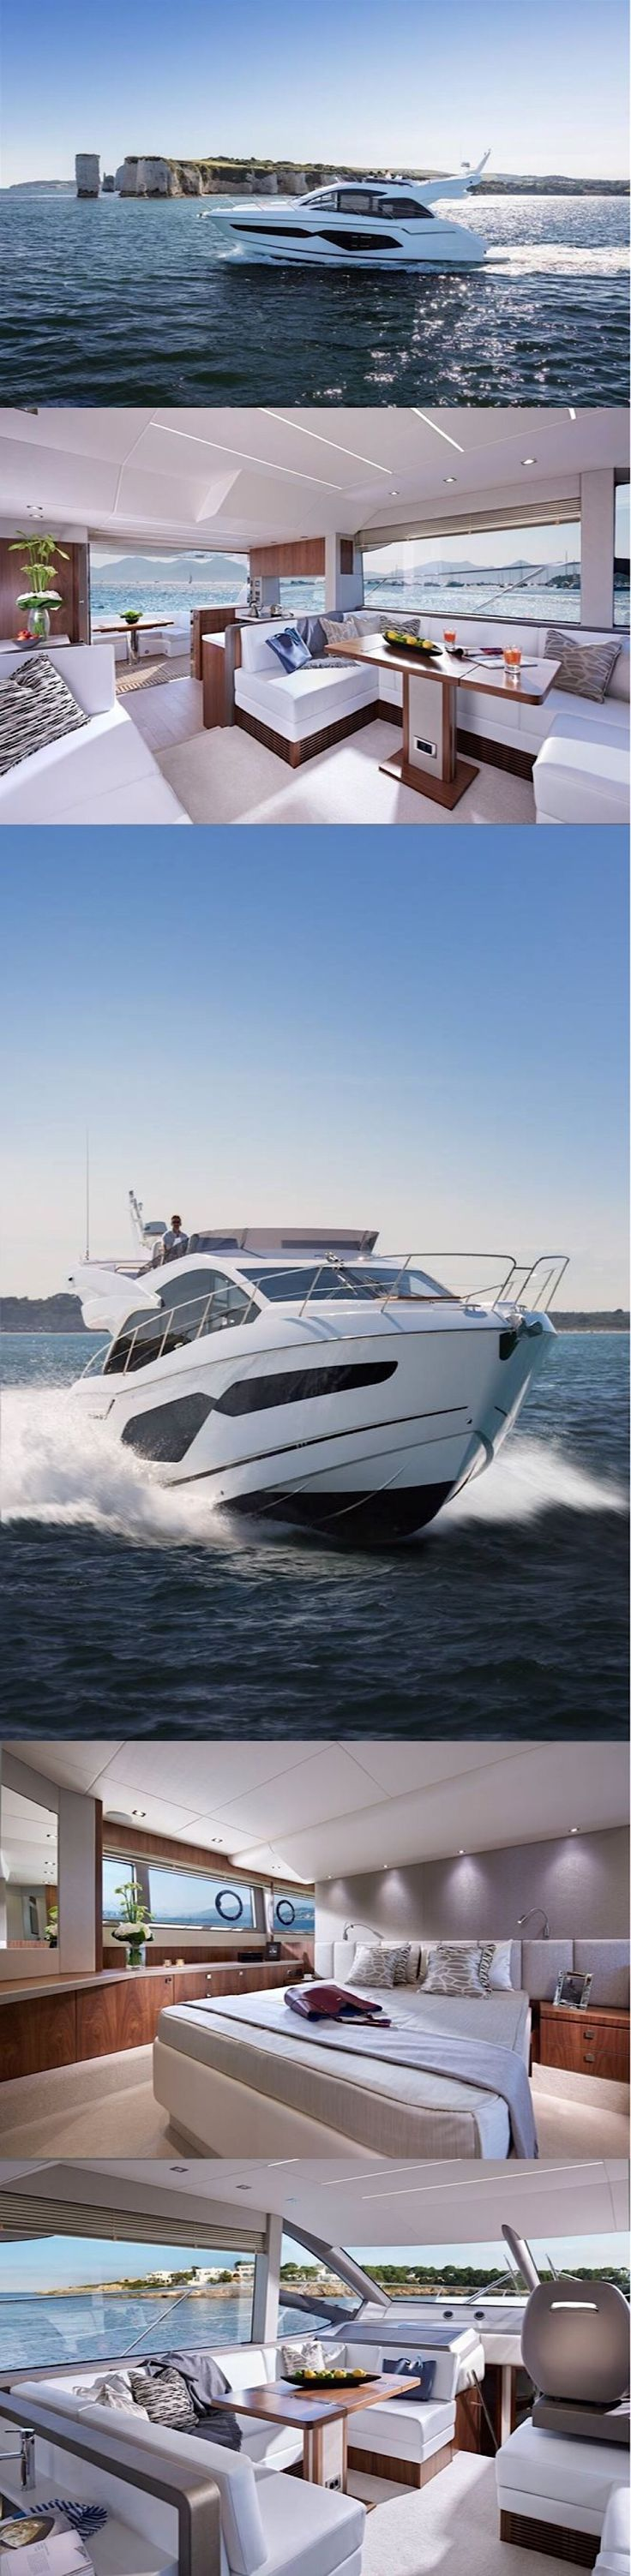 25+ unique Lux yachts ideas on Pinterest | Yachts and yachting ...